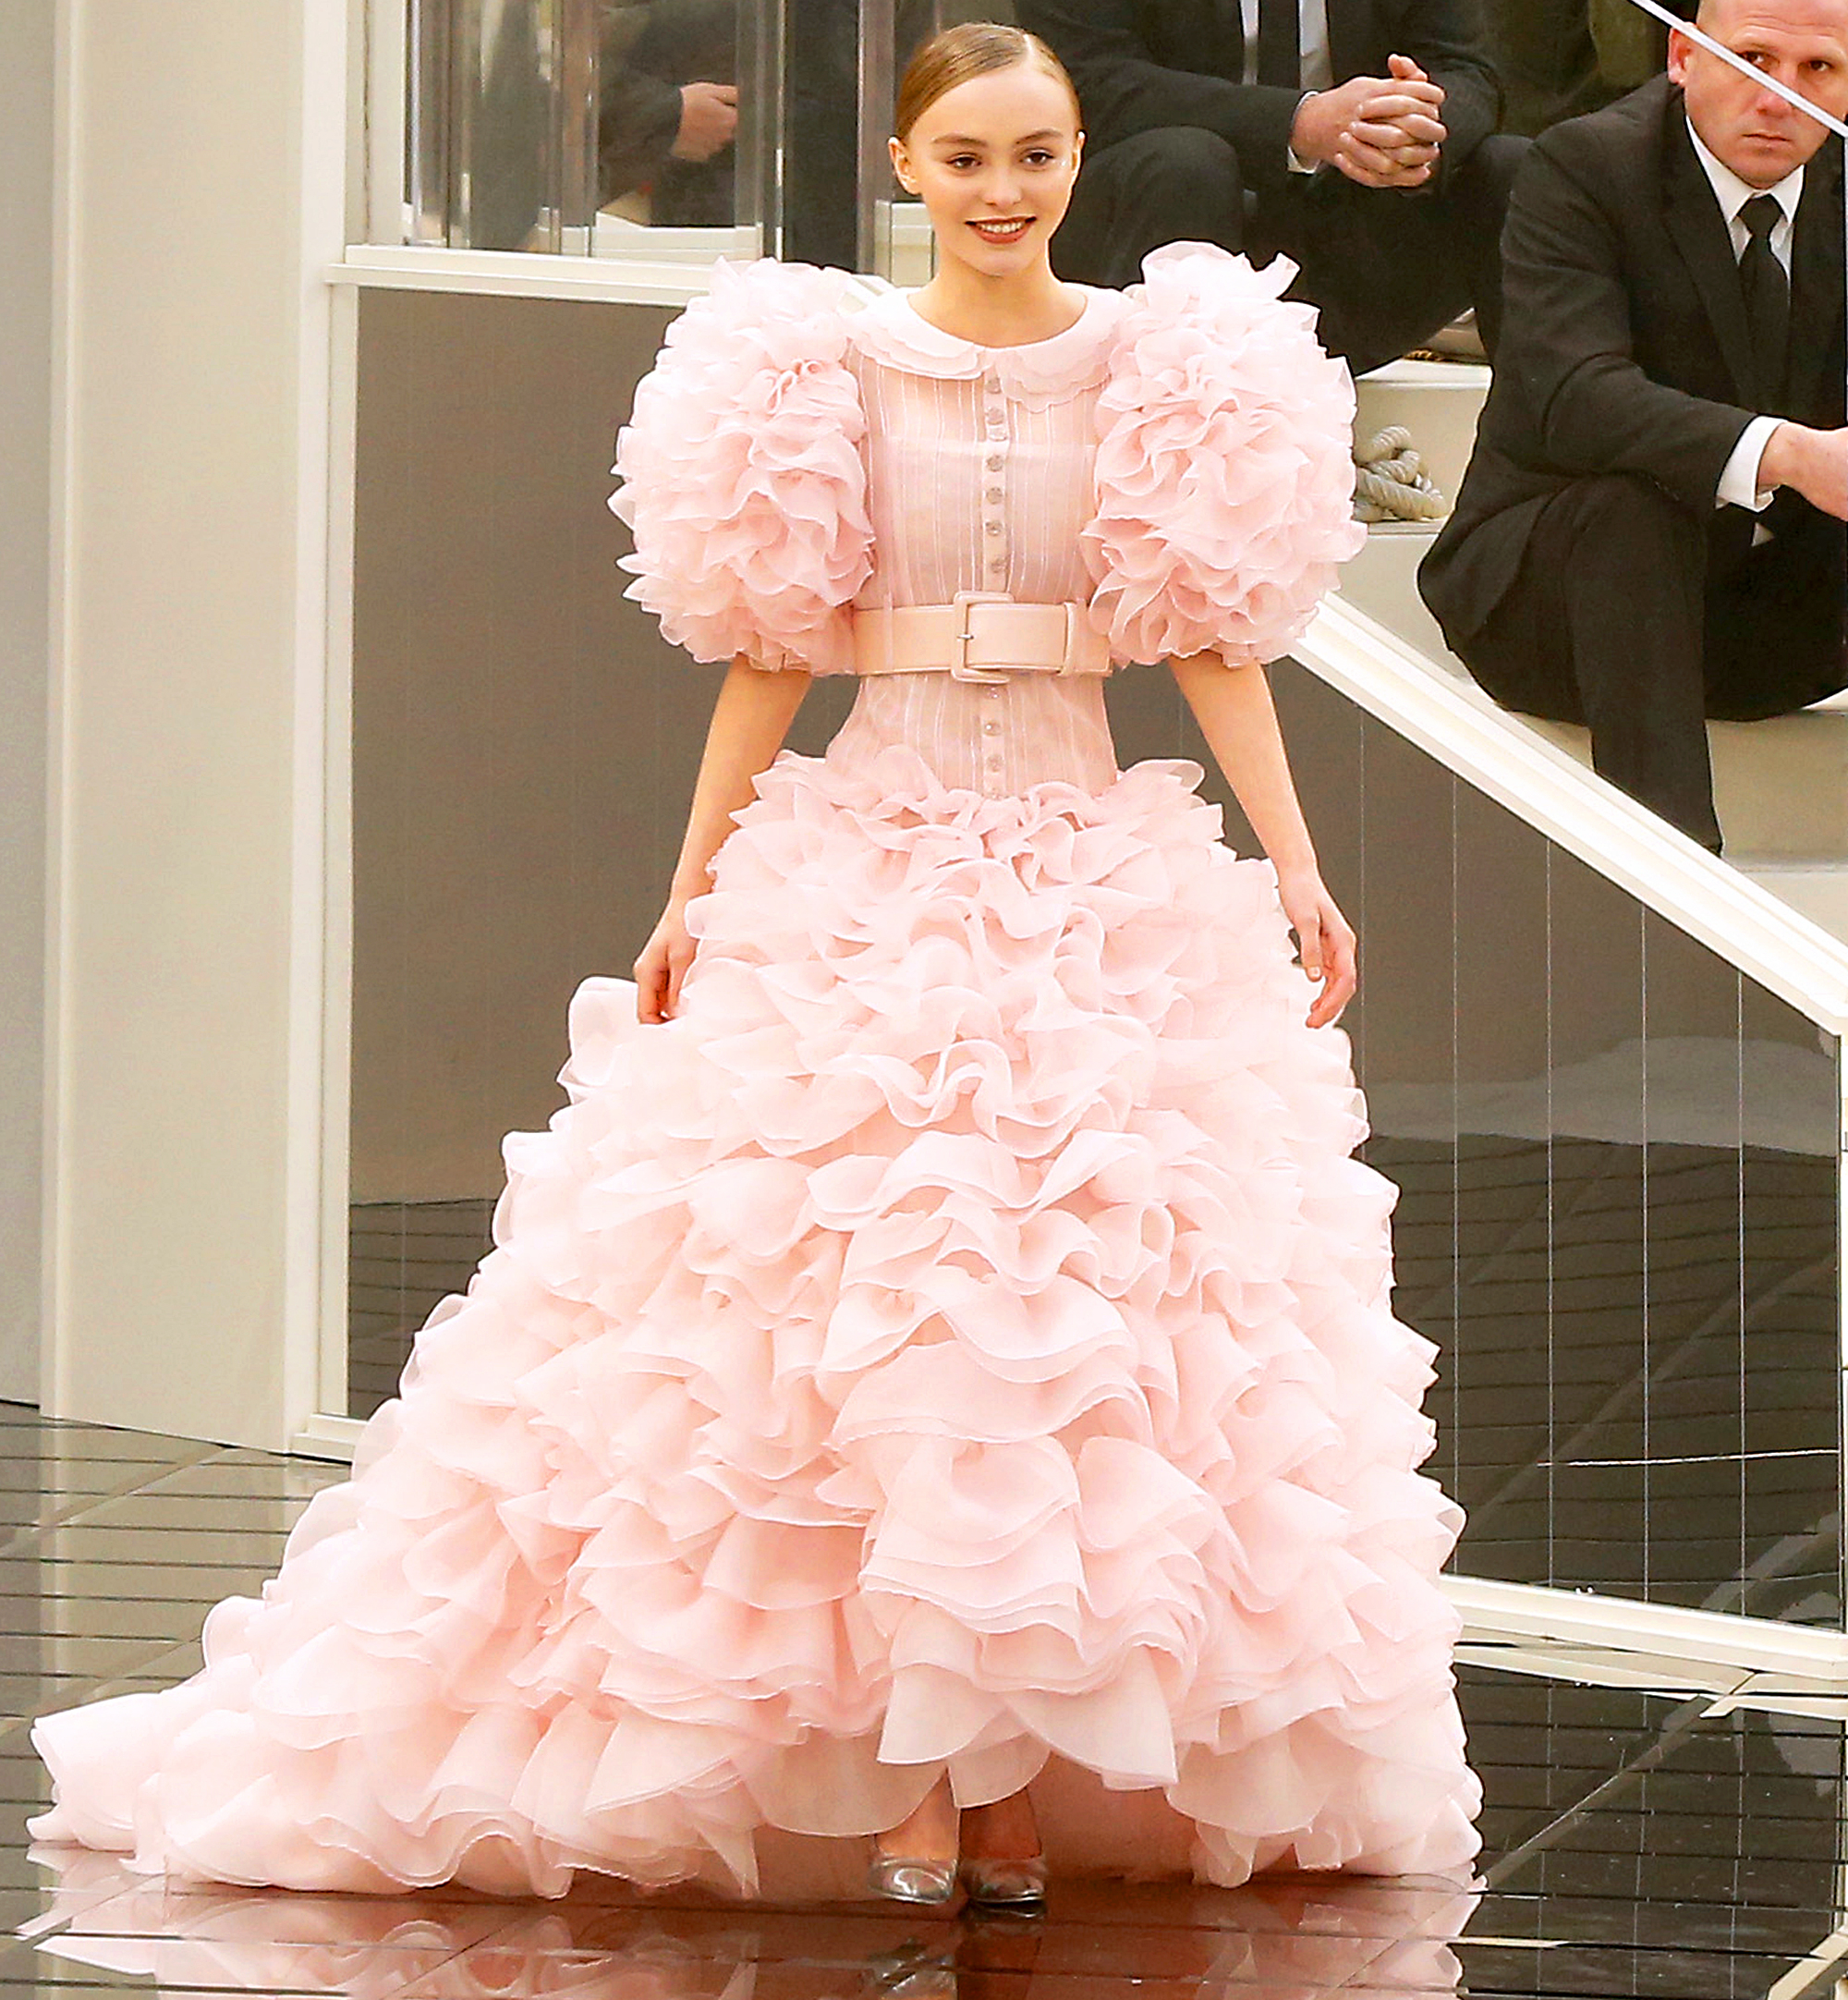 Lily Rose Depp Stunned In A Blush Bridal Gown While Closing The Chanel Haute Couture Show Paris On Tuesday January 24 Bertrand Rindoff Petroff Getty